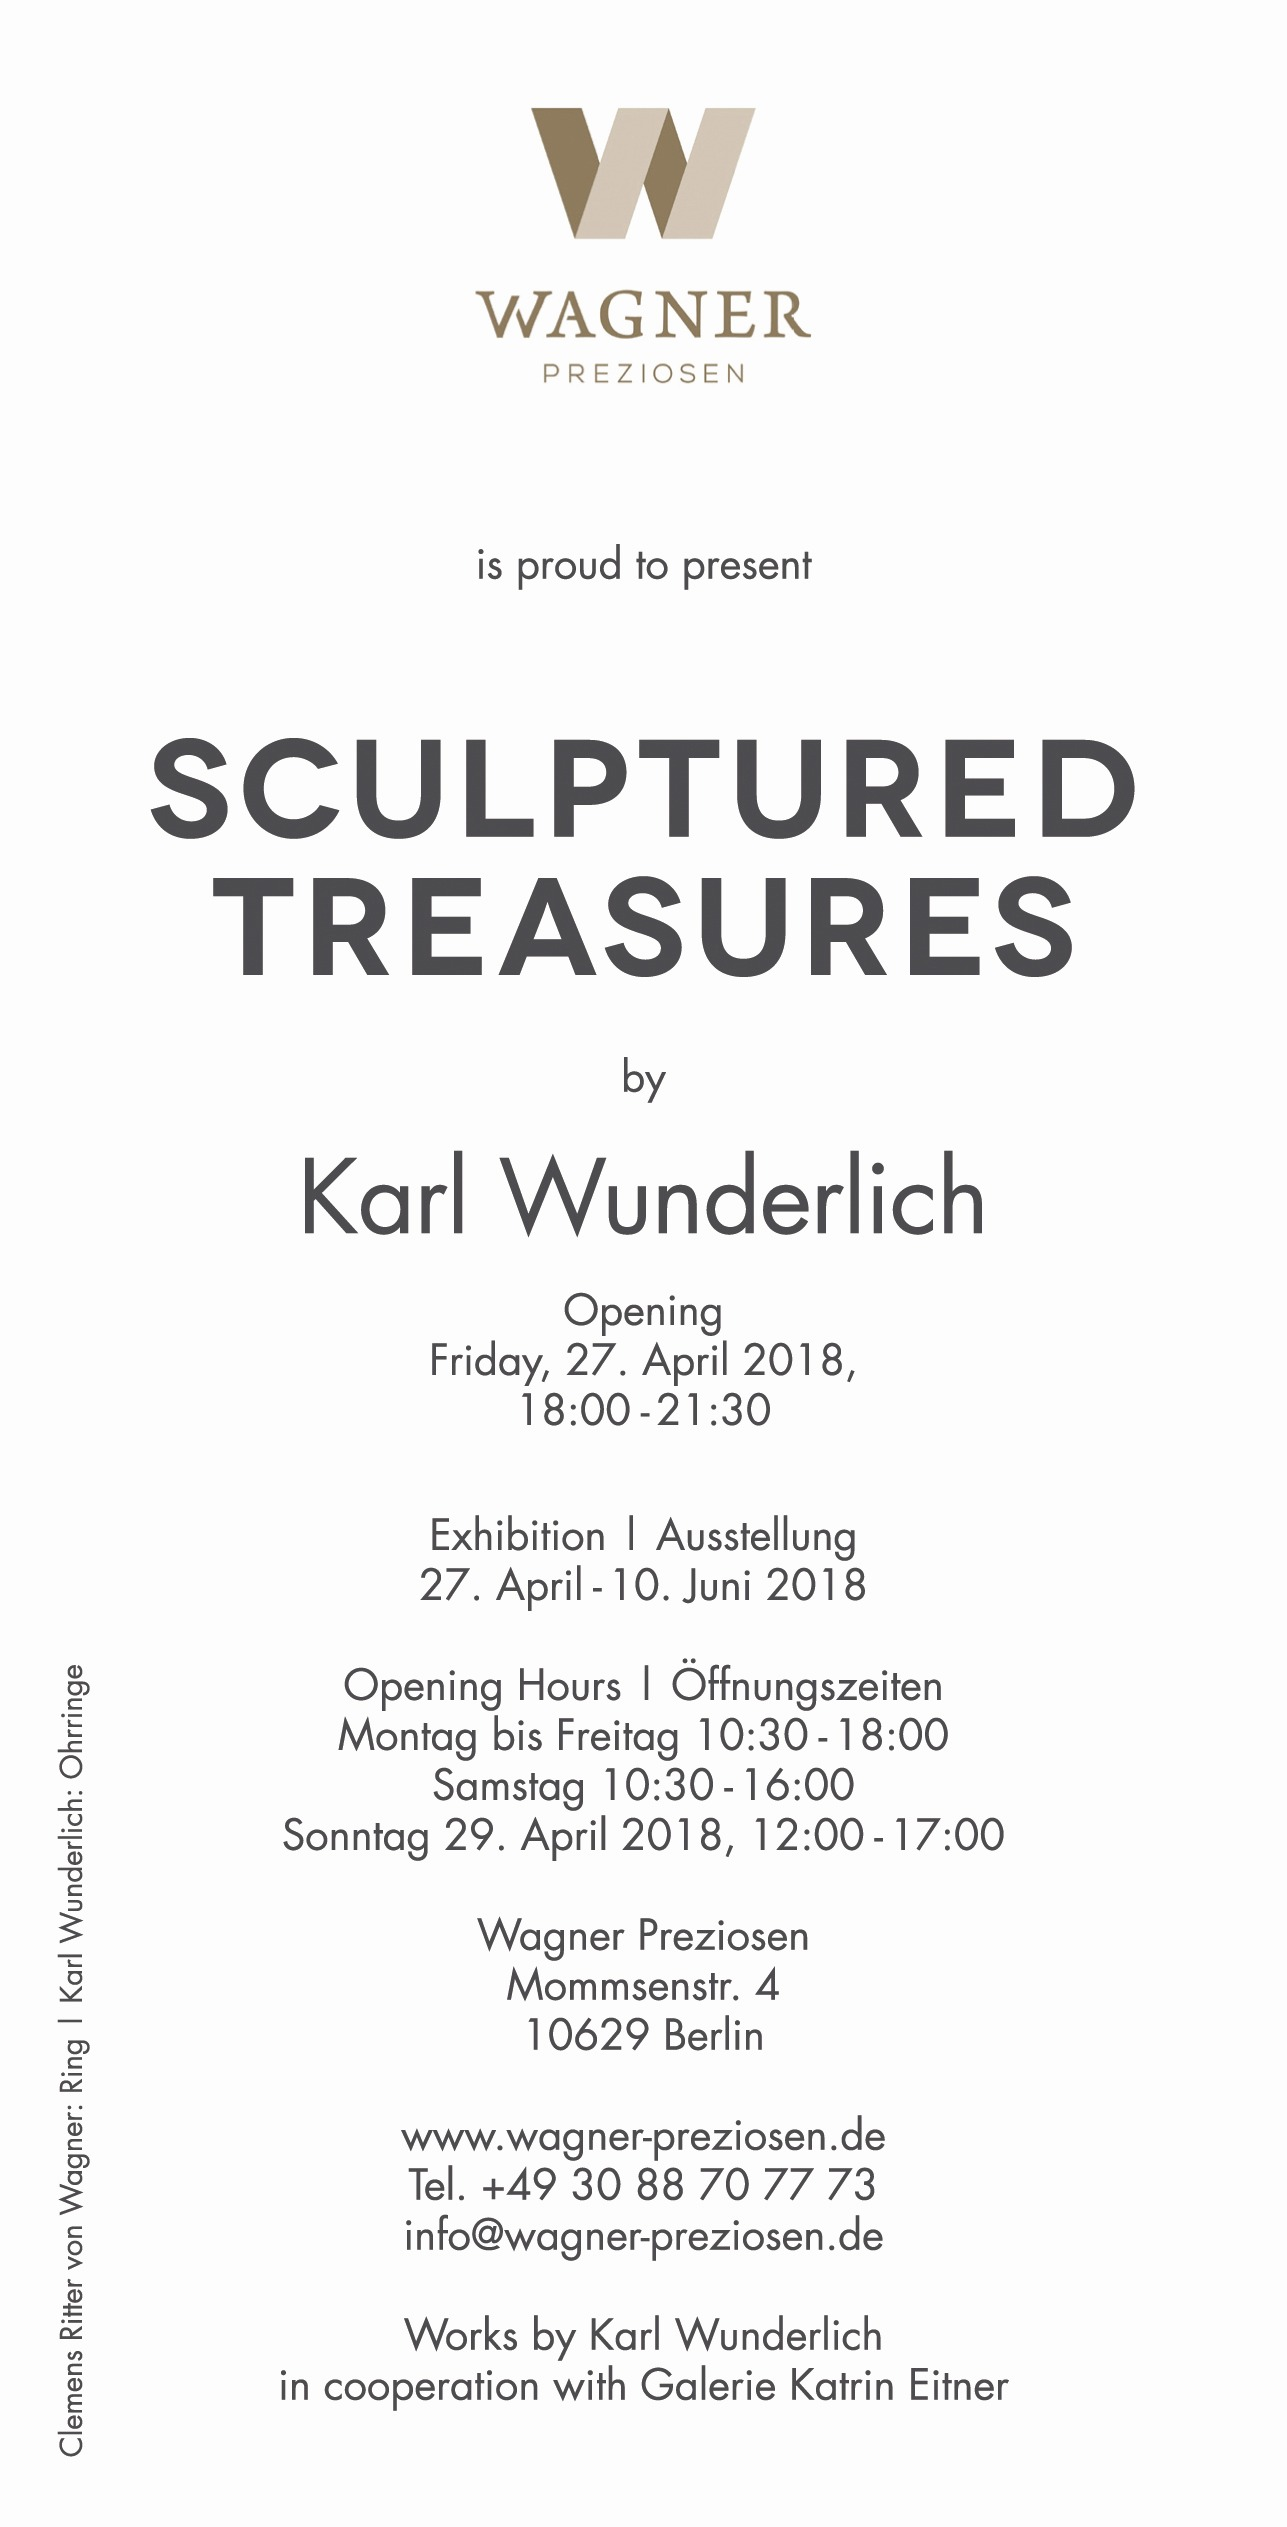 Karl Wunderlich SCULPTURED TREASURES bei Wagner Preziosen